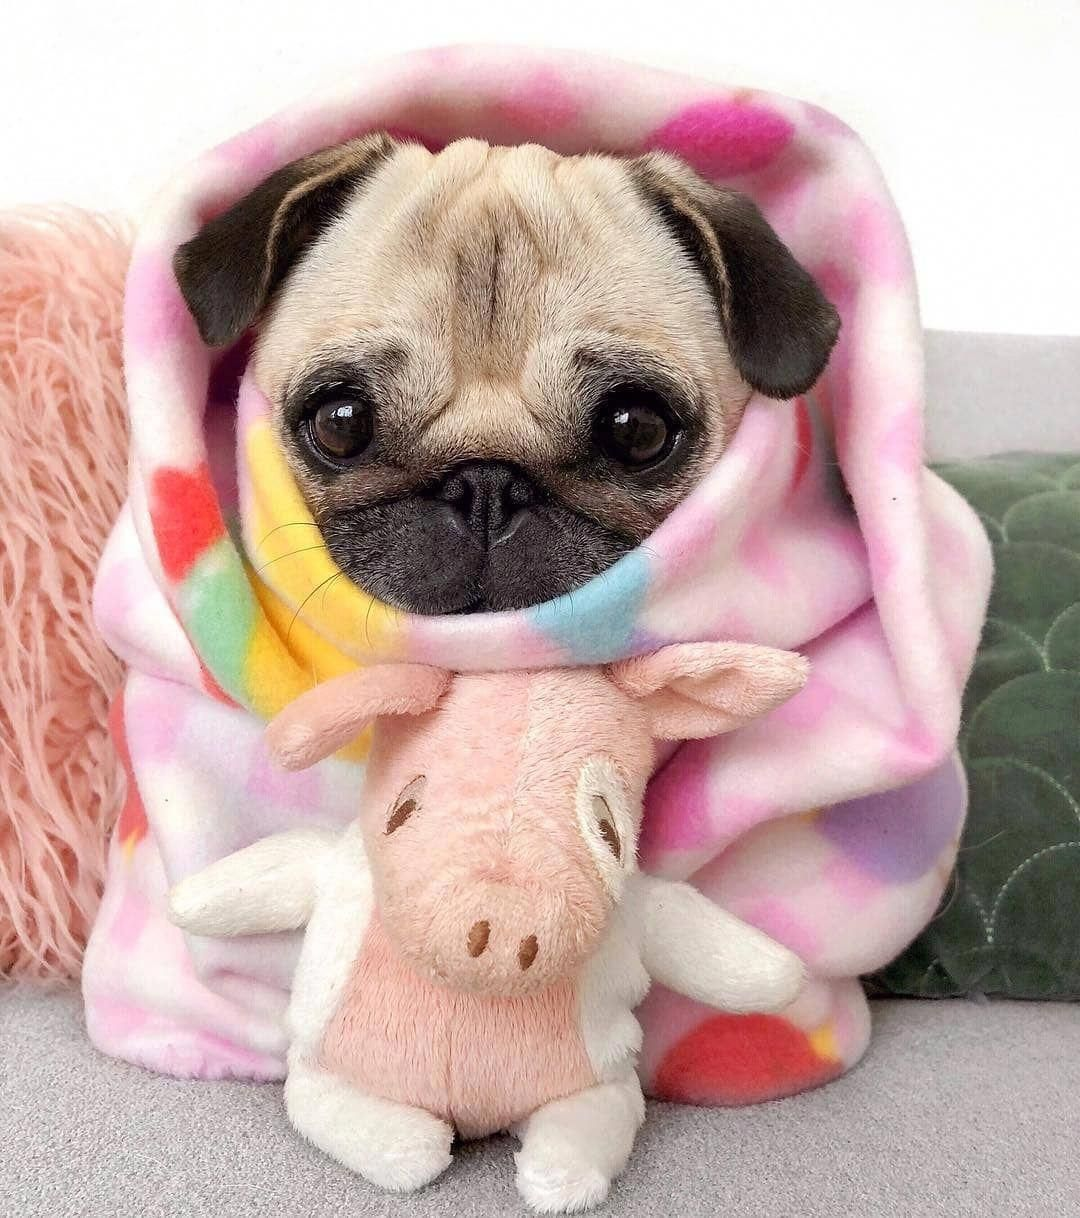 Pin By Ryea Niigℓsѕѕ On Pug Pug Pug Pug Pug Puggg With Images